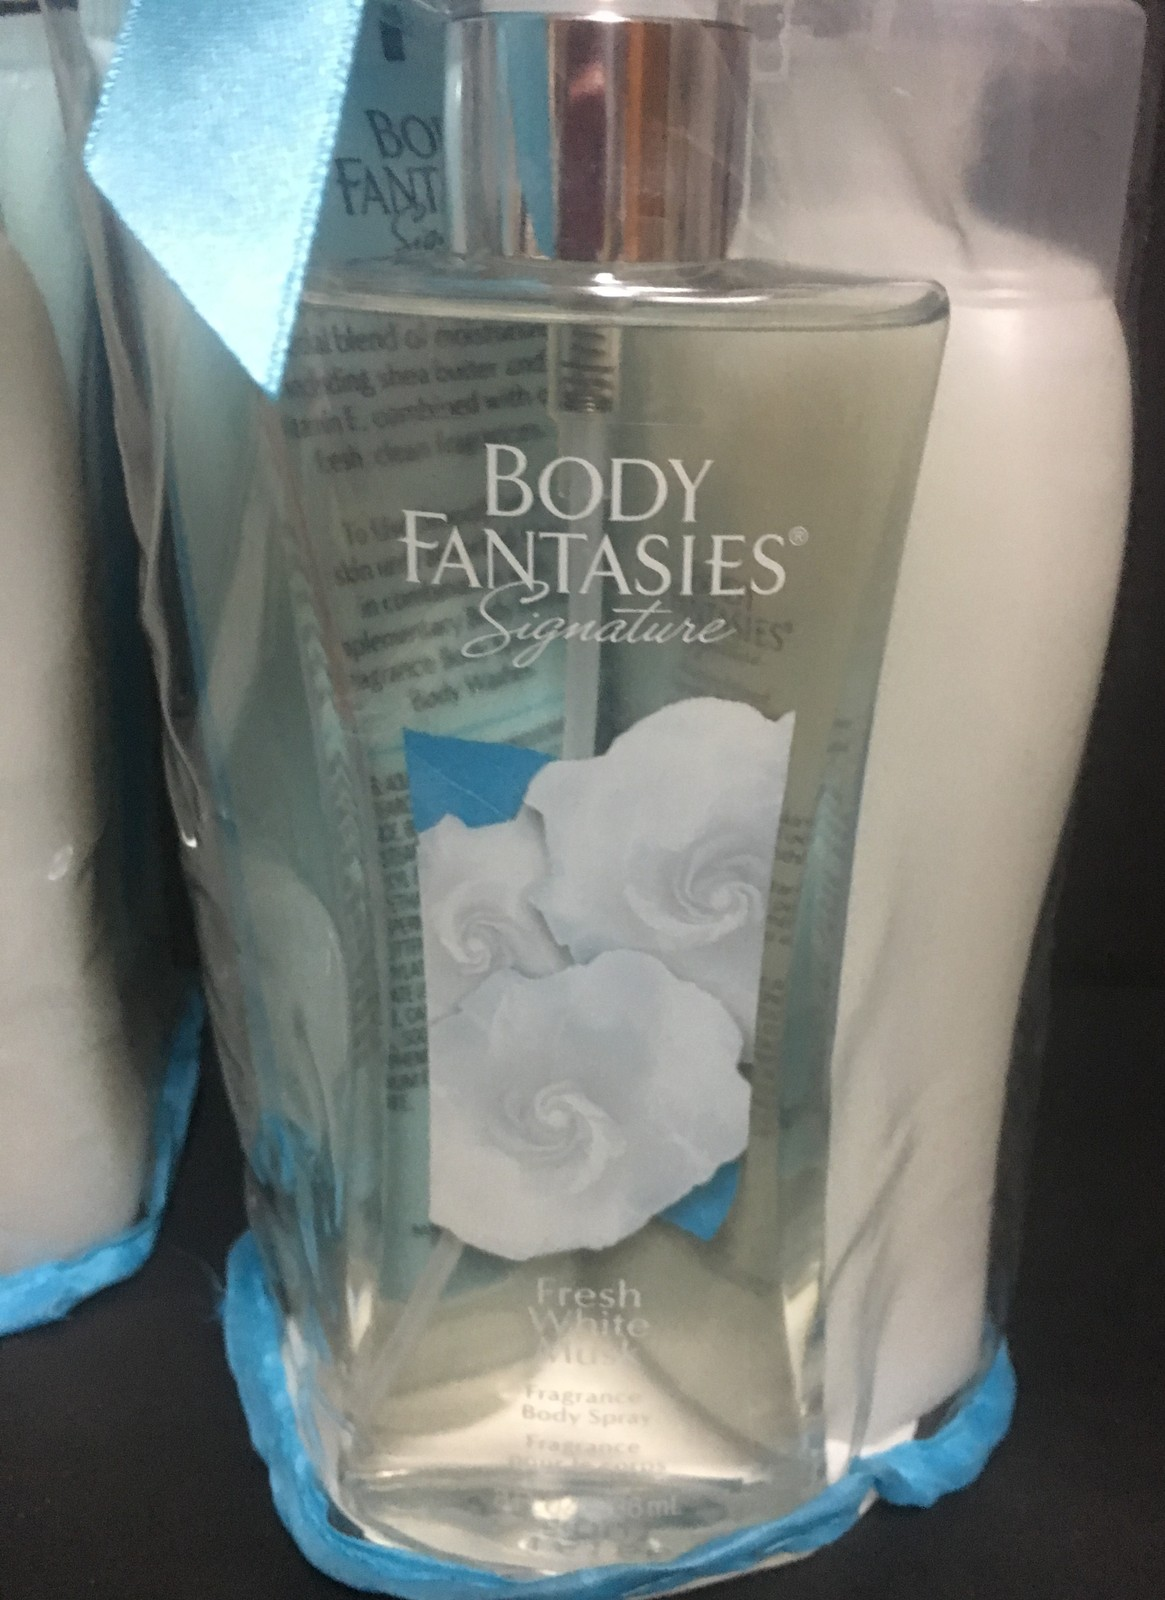 Body Fantasies White Musk Full Size Gift Sets Lot of 4